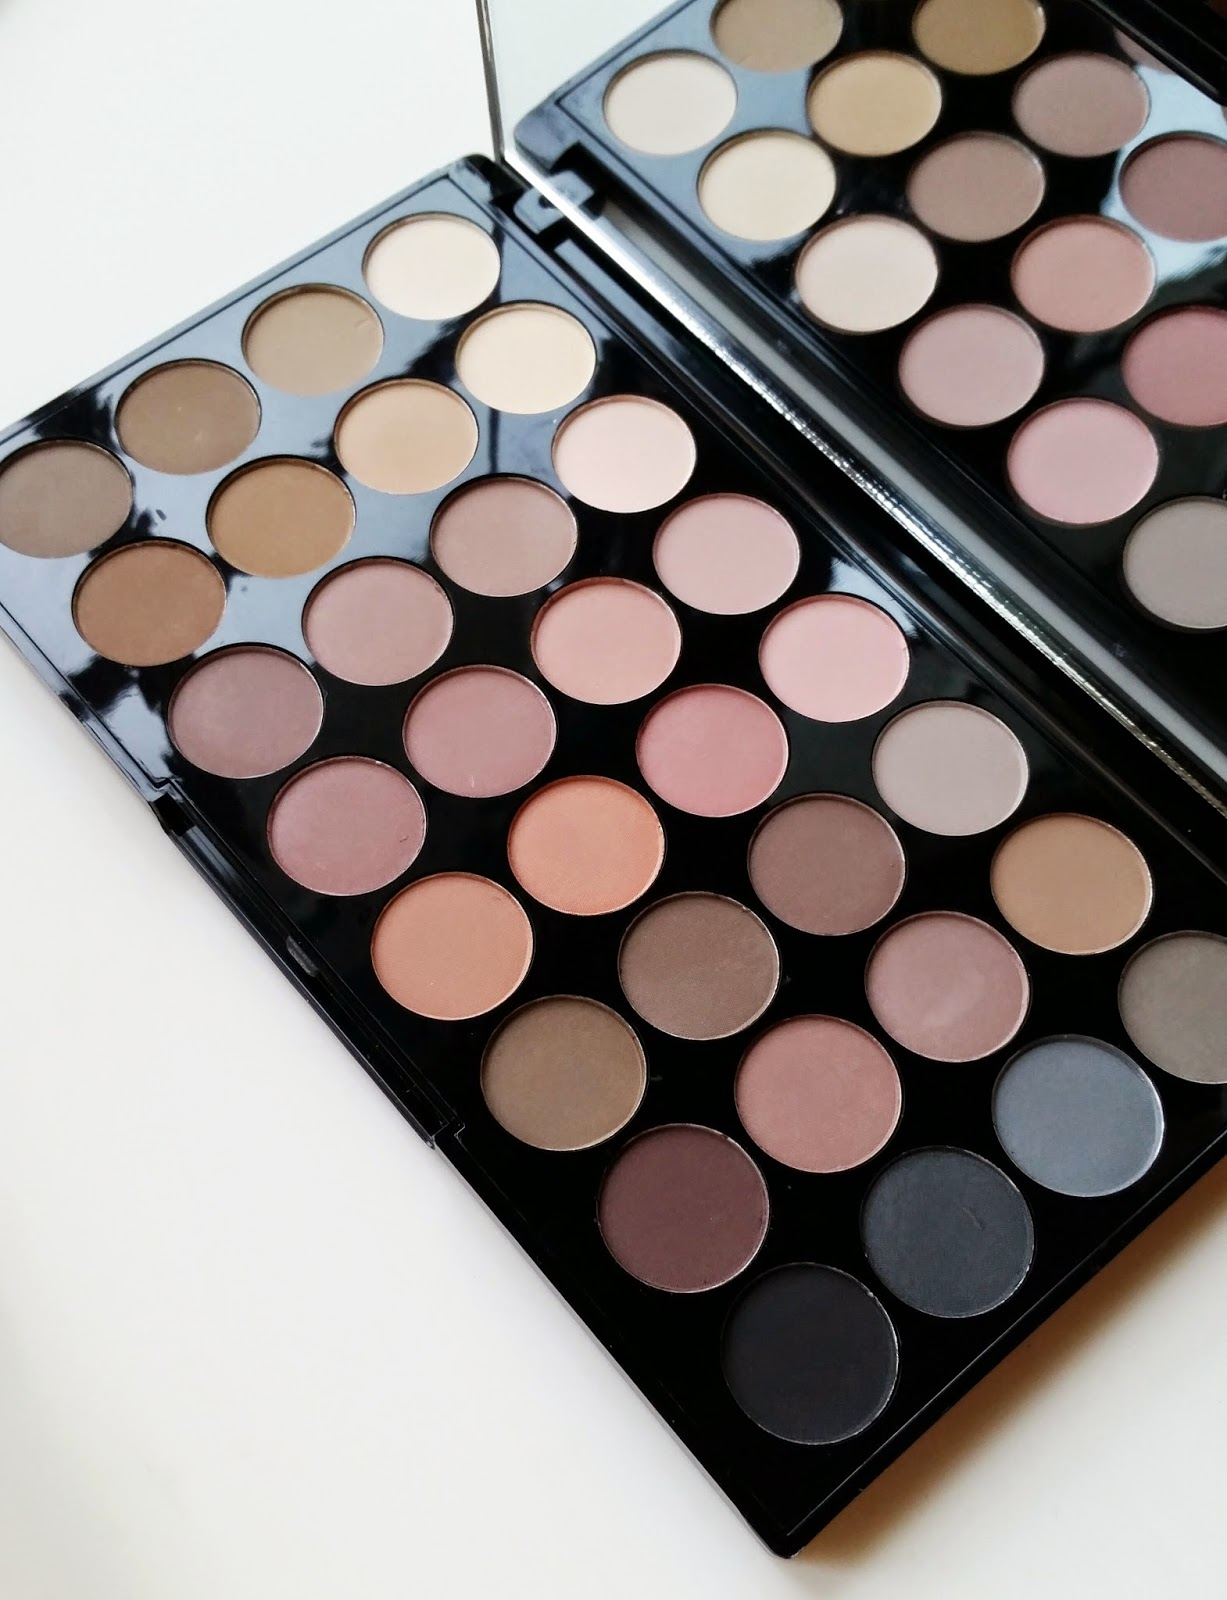 Eyeshadow Palette: Makeup Revolution Flawless Matte Ultra Eyeshadow Palette